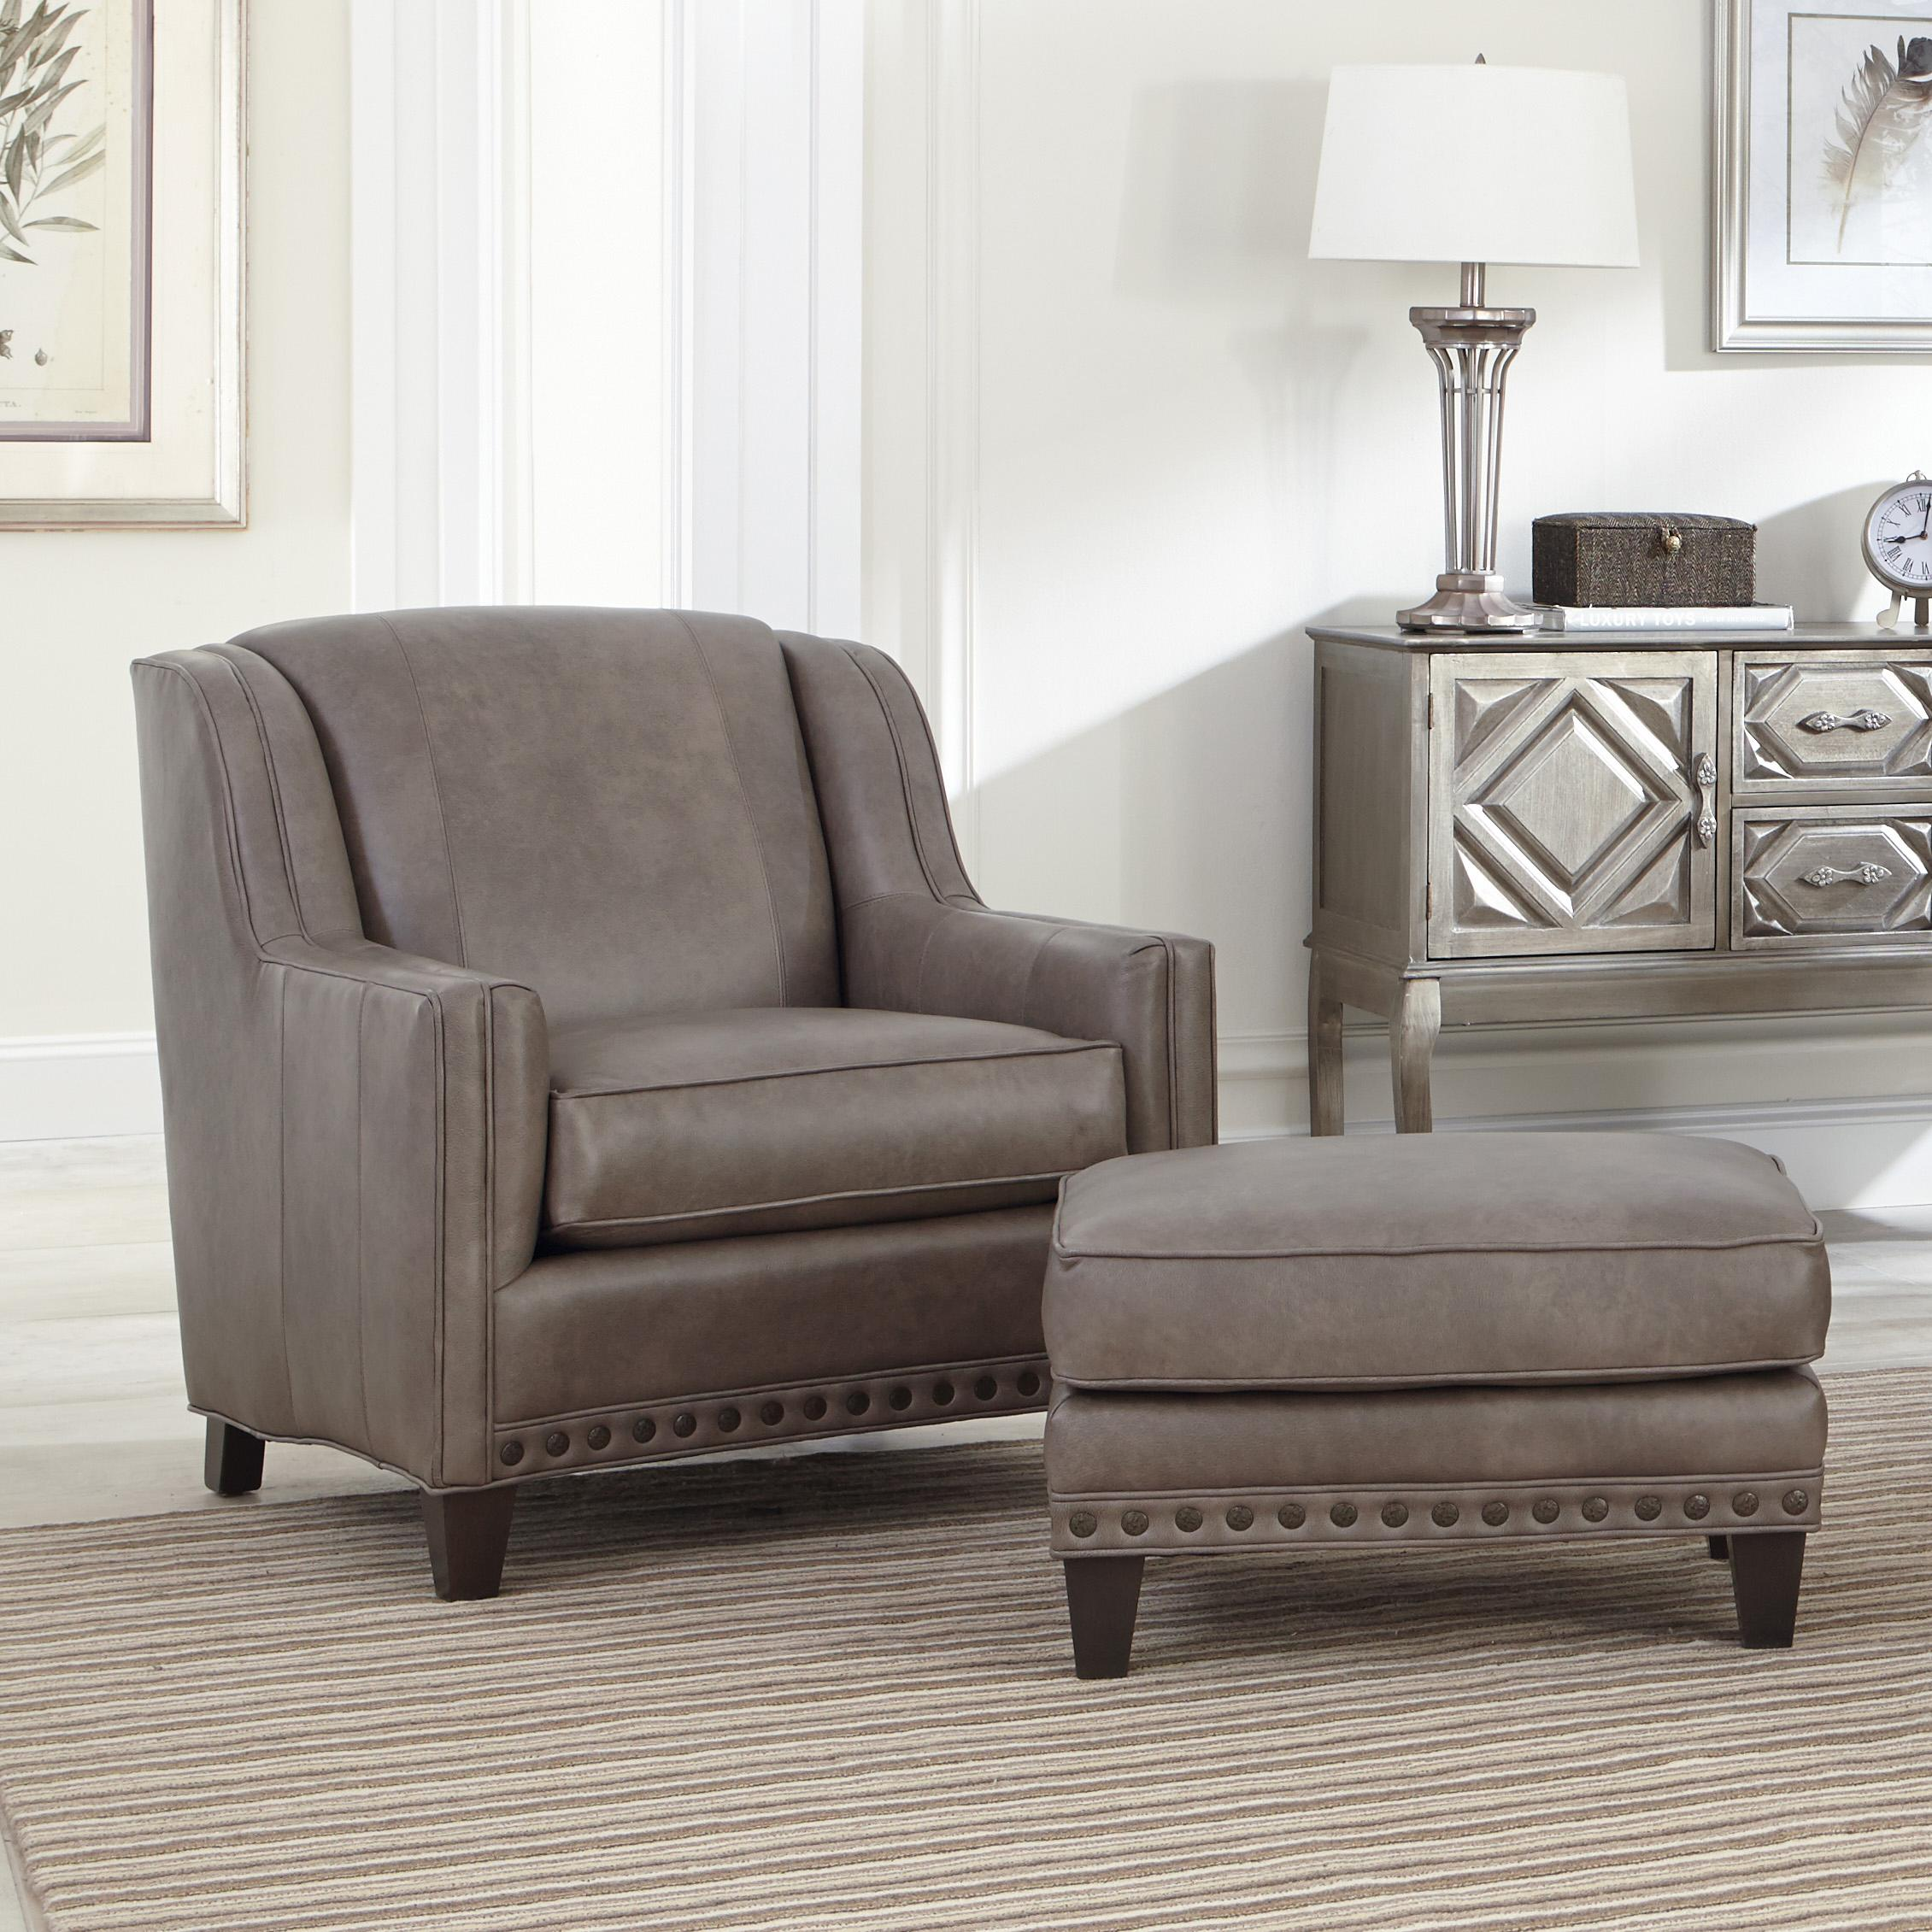 227 Upholstered Chair and Ottoman Combination by Smith Brothers at Coconis Furniture & Mattress 1st